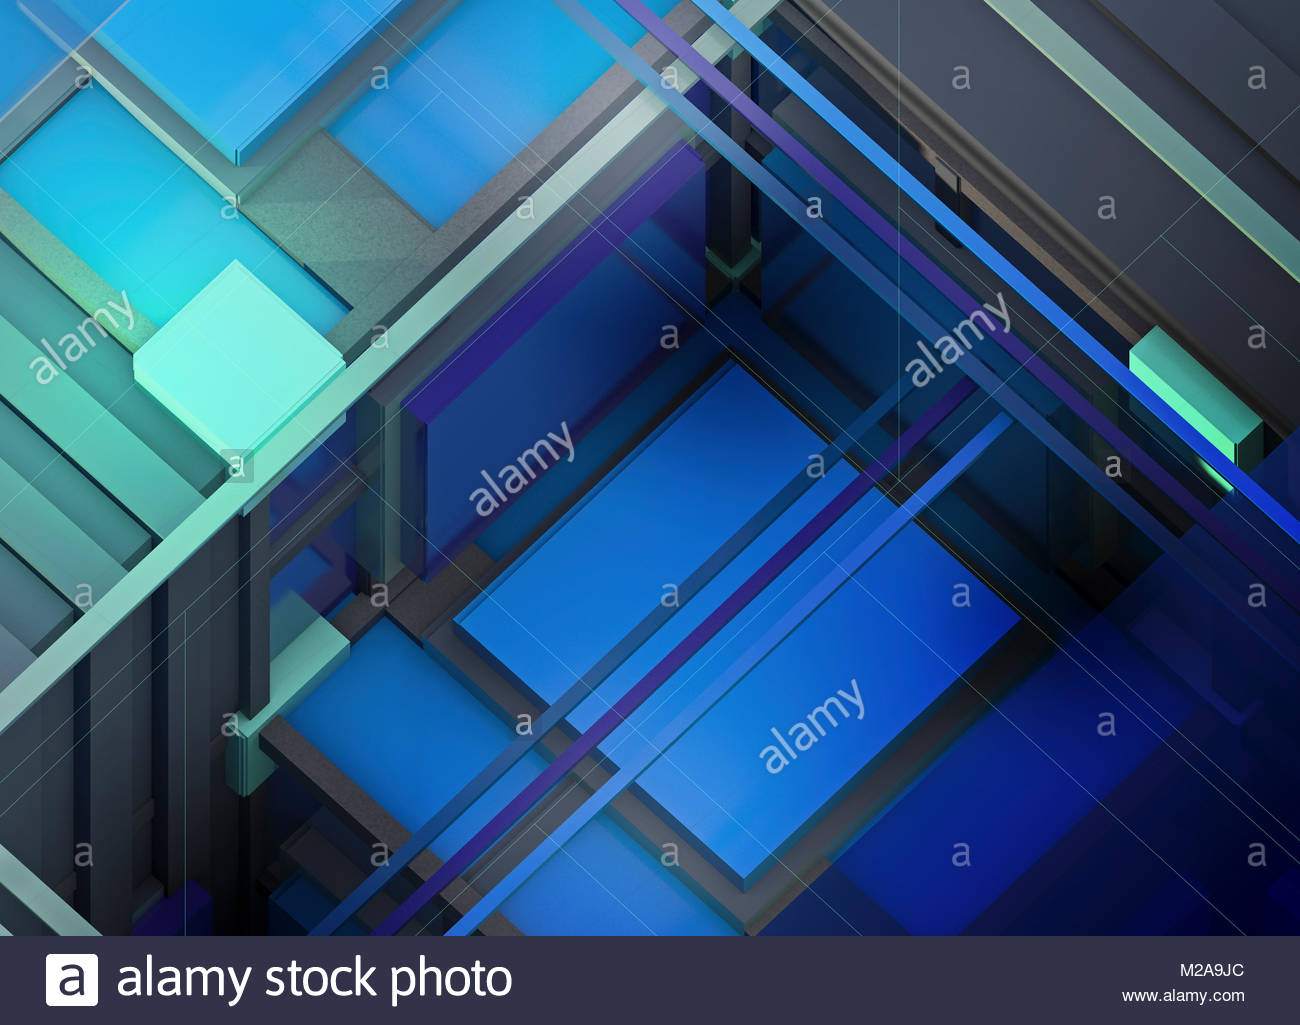 Abstract three dimensional geometric structure - Stock Image